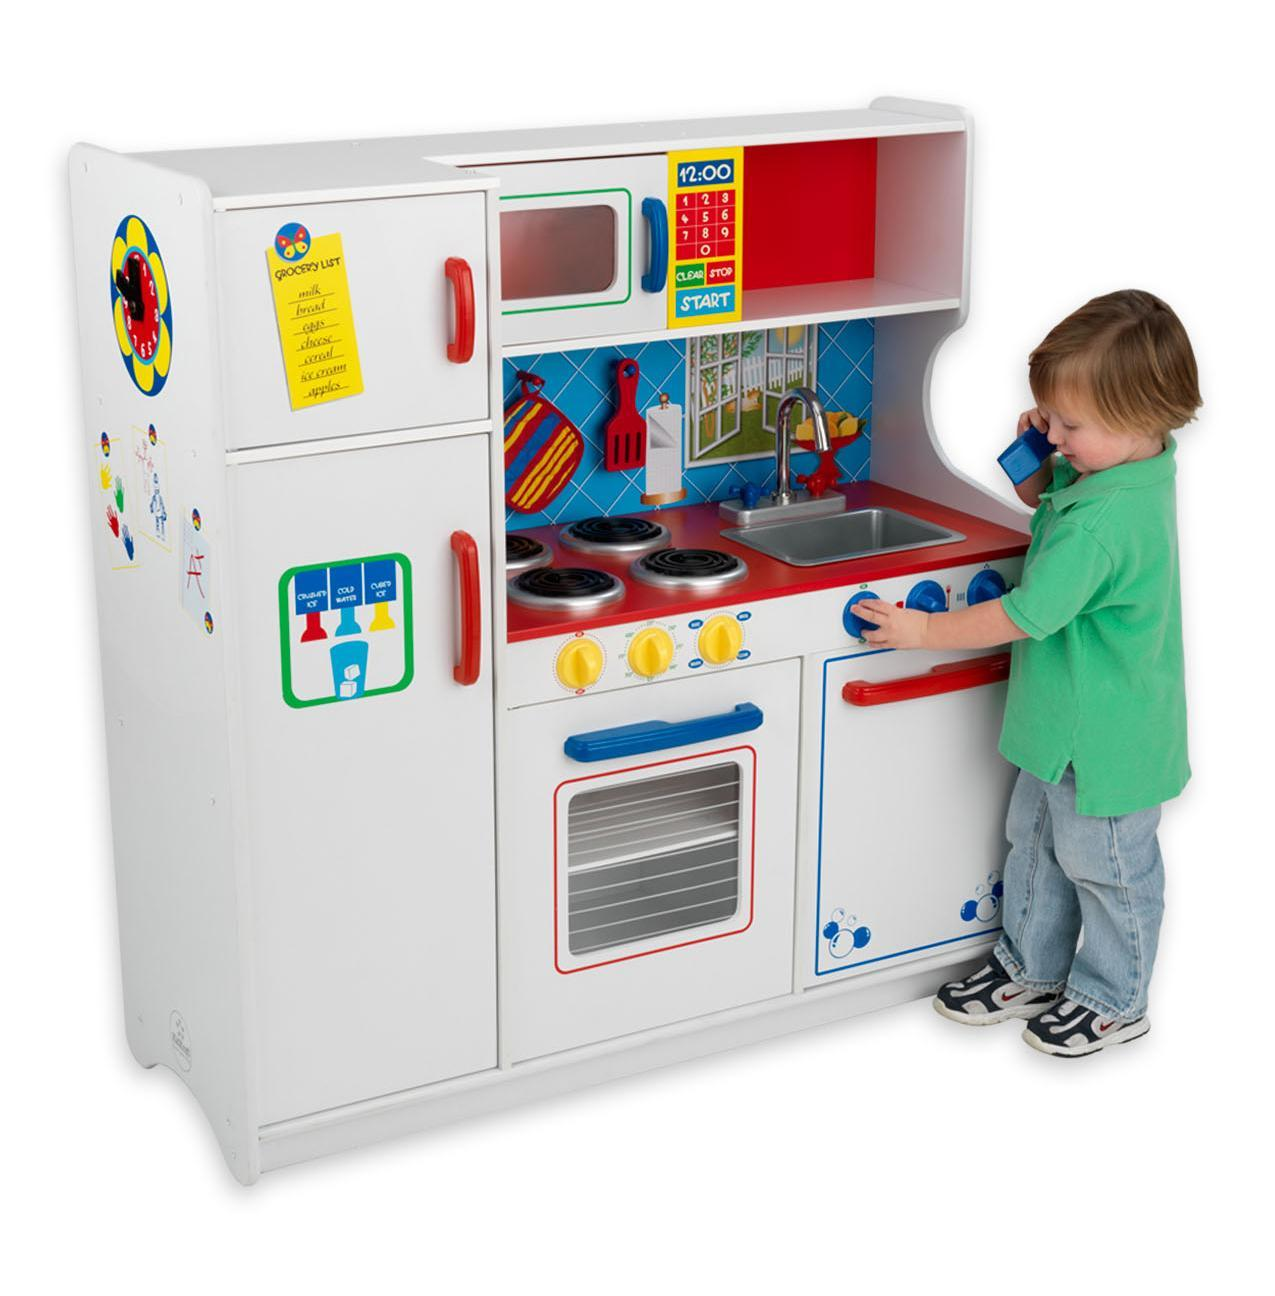 Step By Step Instructions To Choose A Pretend Play Kitchen